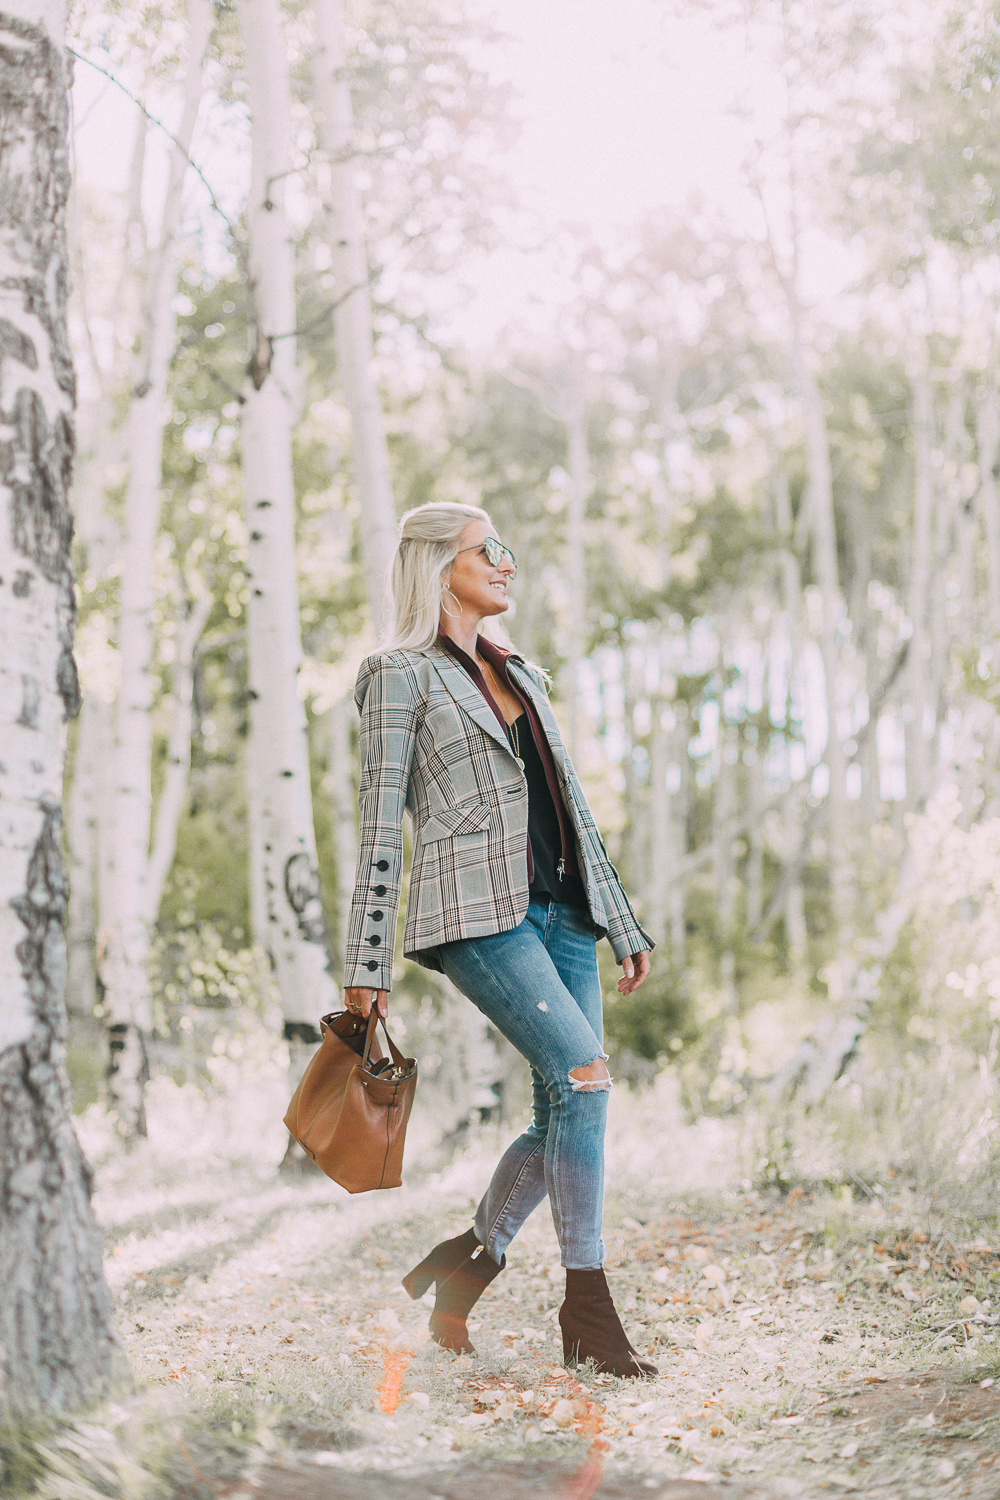 Fall Booties 2018 featuring Vince Camuto black suede side zip booties with a veronica beard plaid blazer and blankNYC jeans on fashion blogger over 40, Erin Busbee of BusbeeStyle.com